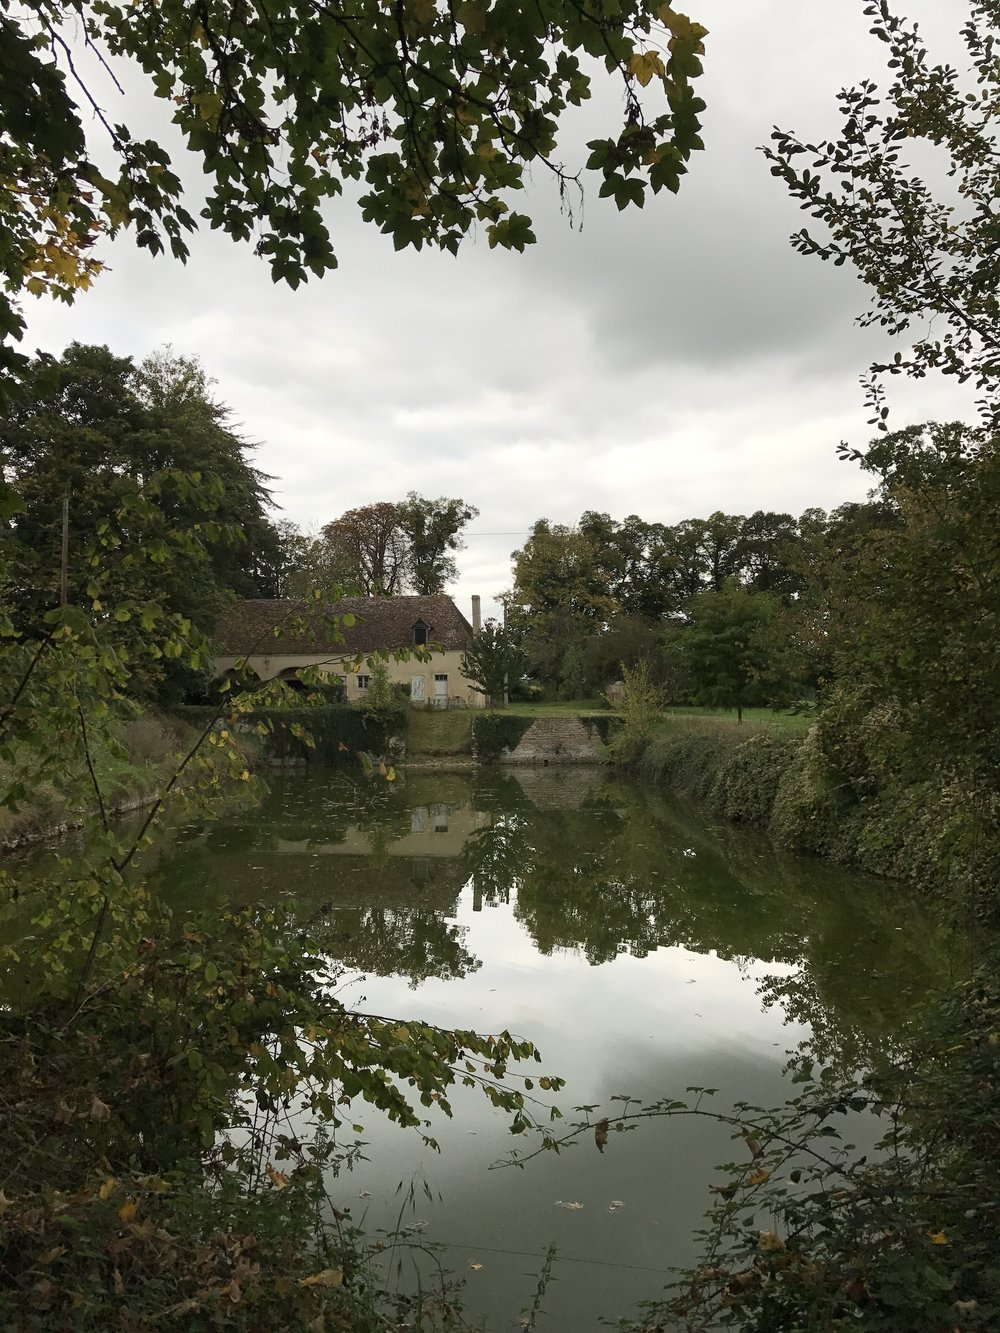 The lake at Chateau de la Ruche